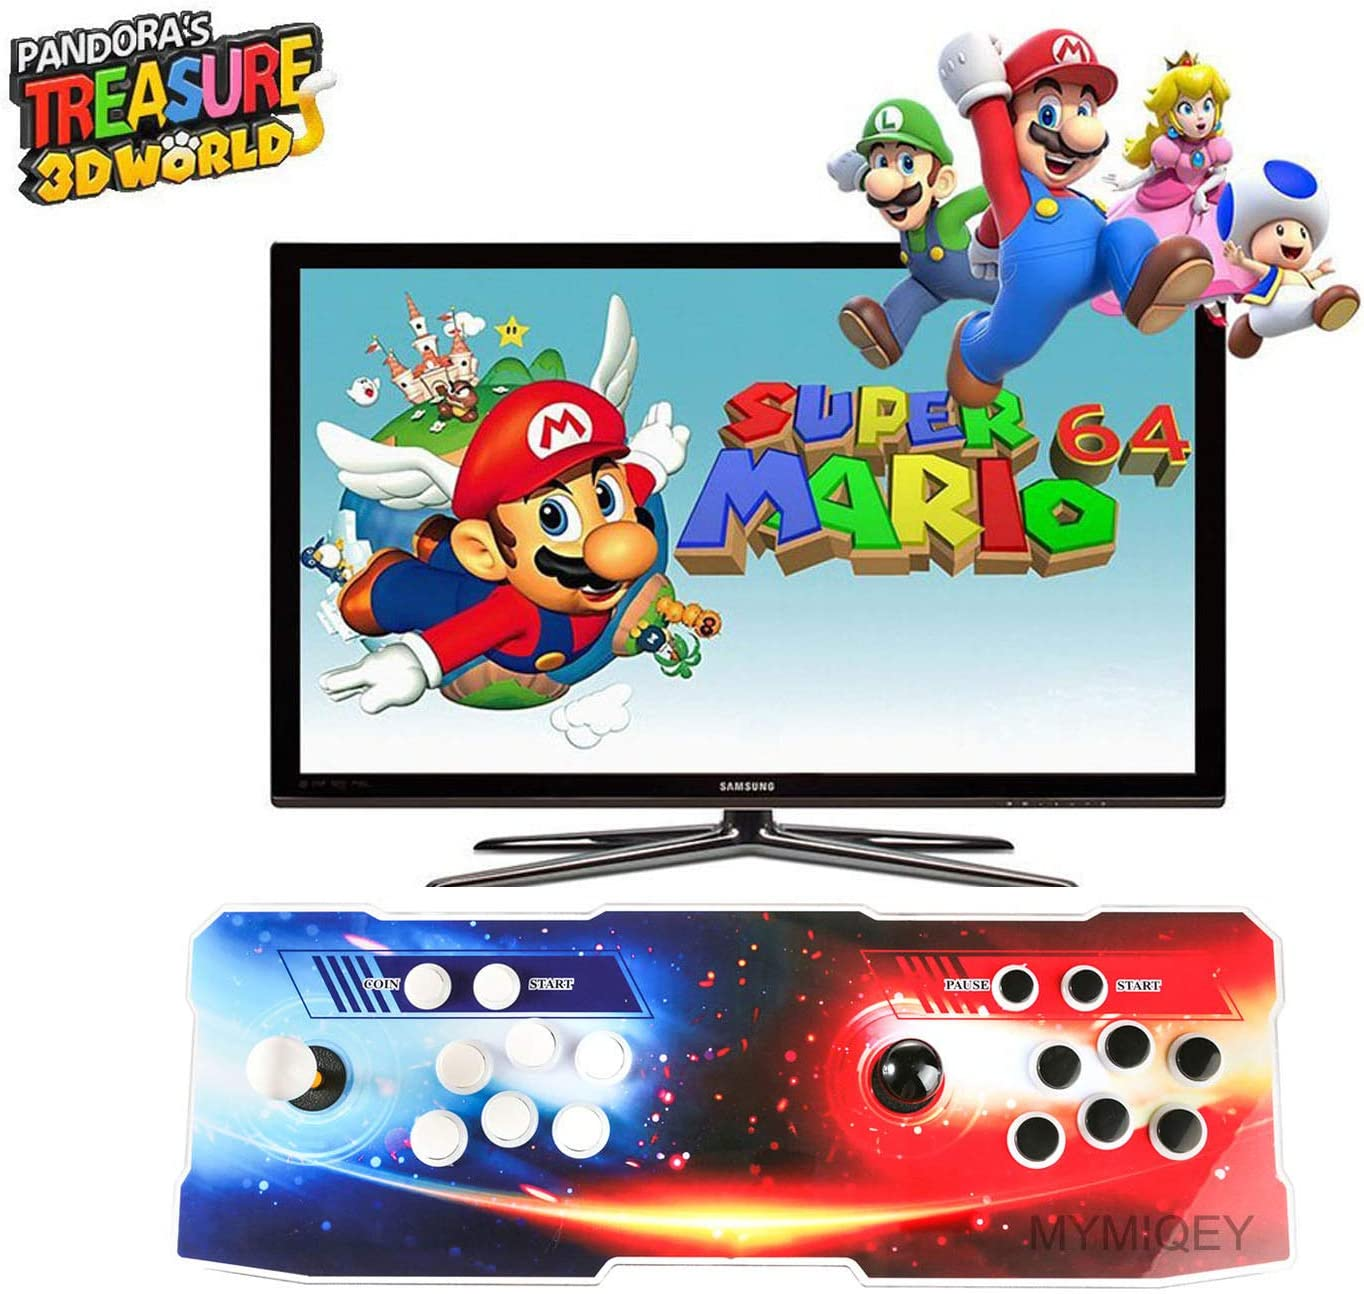 Pandora Treasure II Arcade Game Console, 2650 Retro HD Games, Support 3D Games, Search/Save/Hide/Pause Games, Add More Games, 1920x1080 Full HD, Support 4 Players Online, 2 Player Game Controls